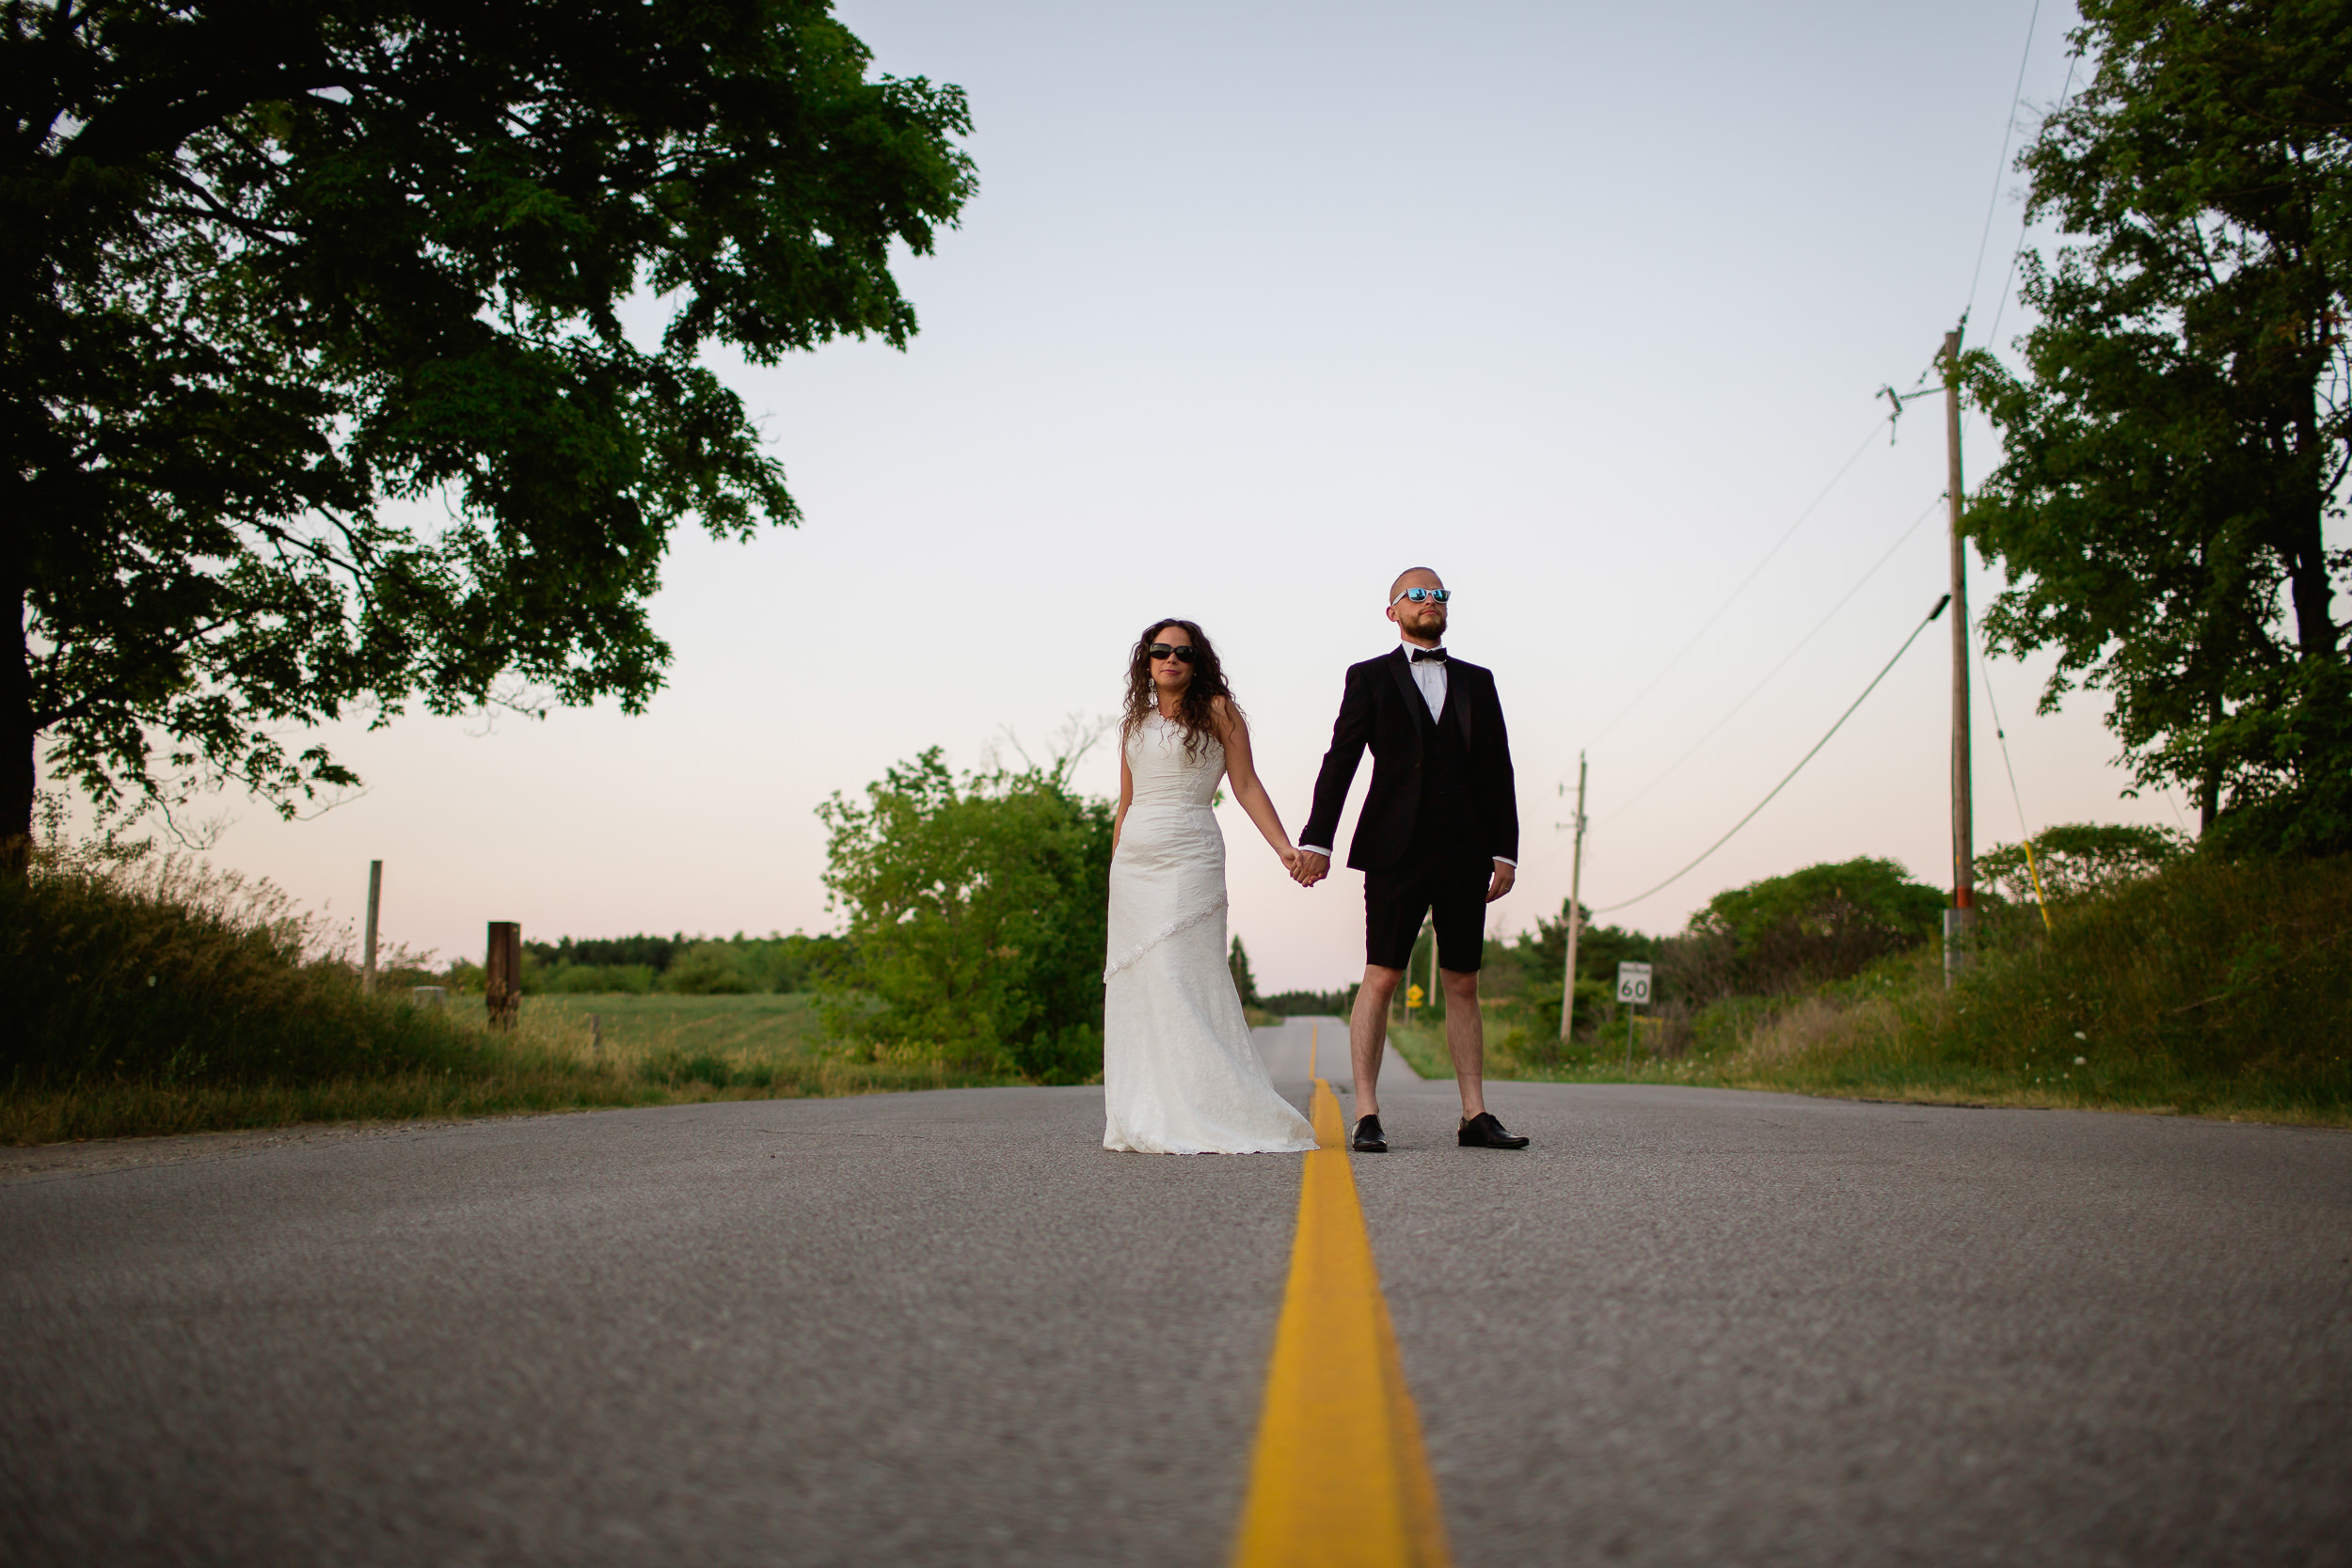 Canadian wedding - alternative wedding - married in shorts